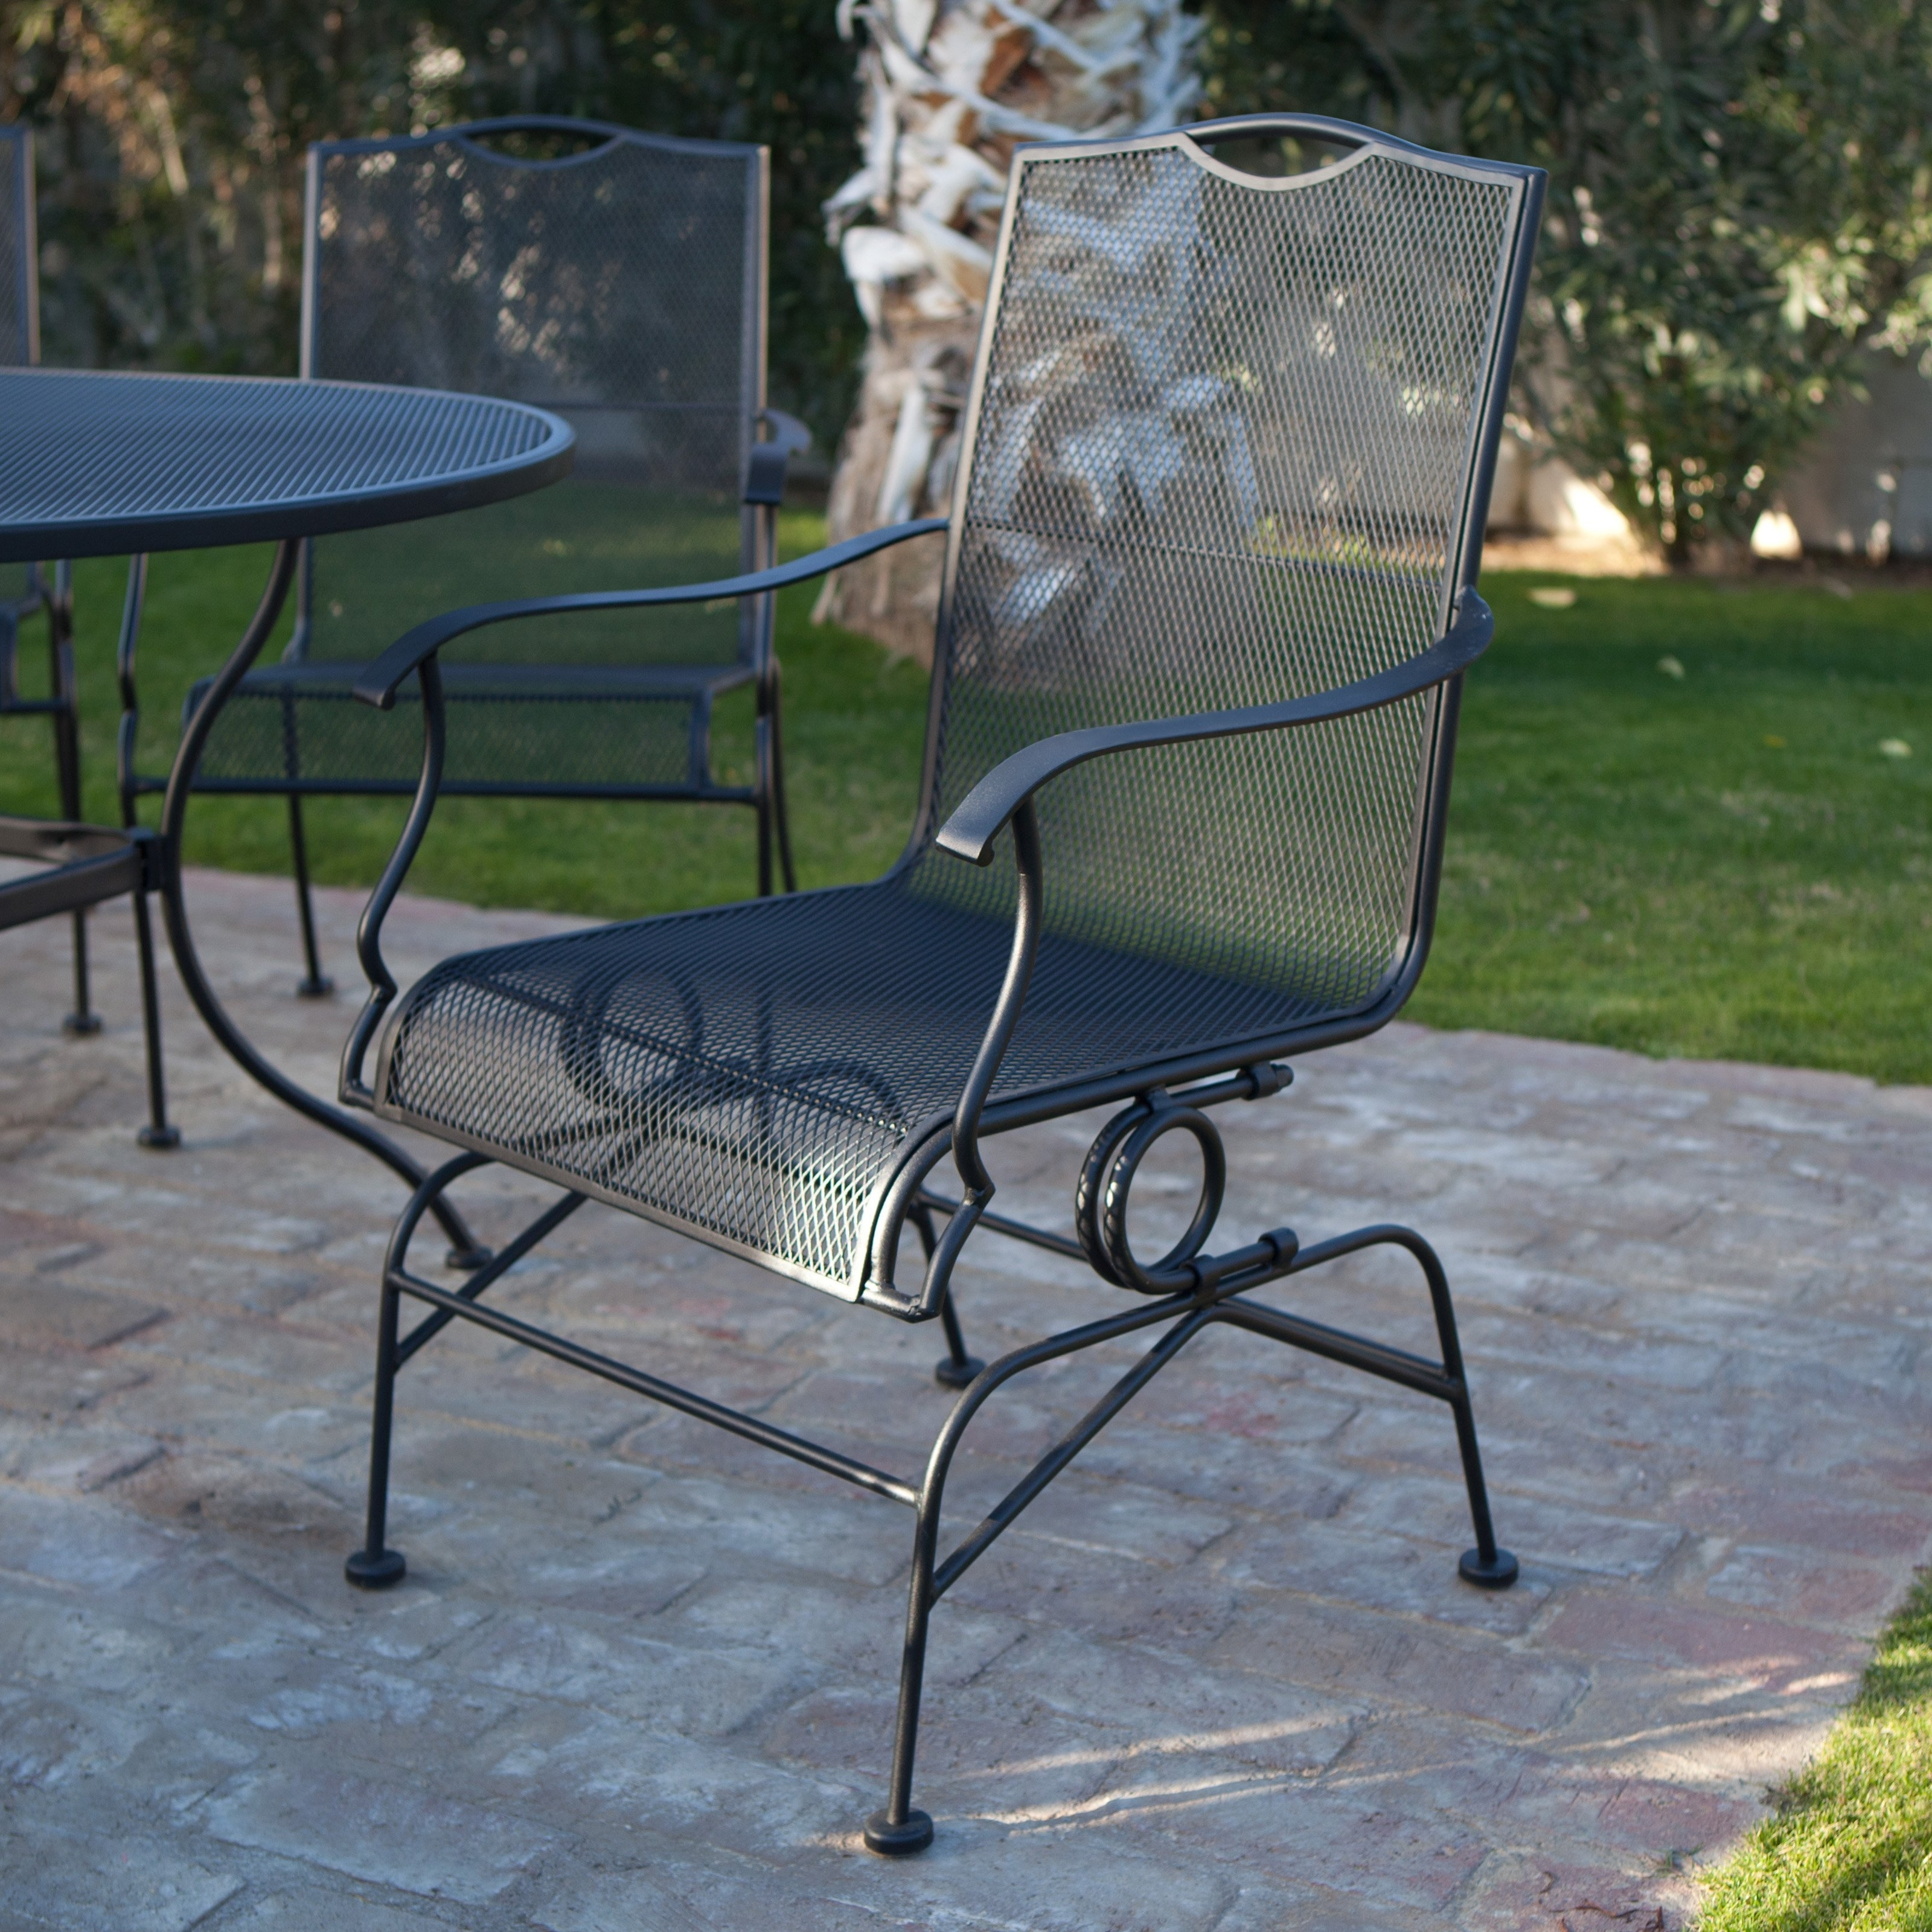 Trendy Lawn Furniture Near Me 38 Deck Outdoor Table And Chairs Regarding Most Current Wrought Iron Patio Rocking Chairs (View 16 of 20)